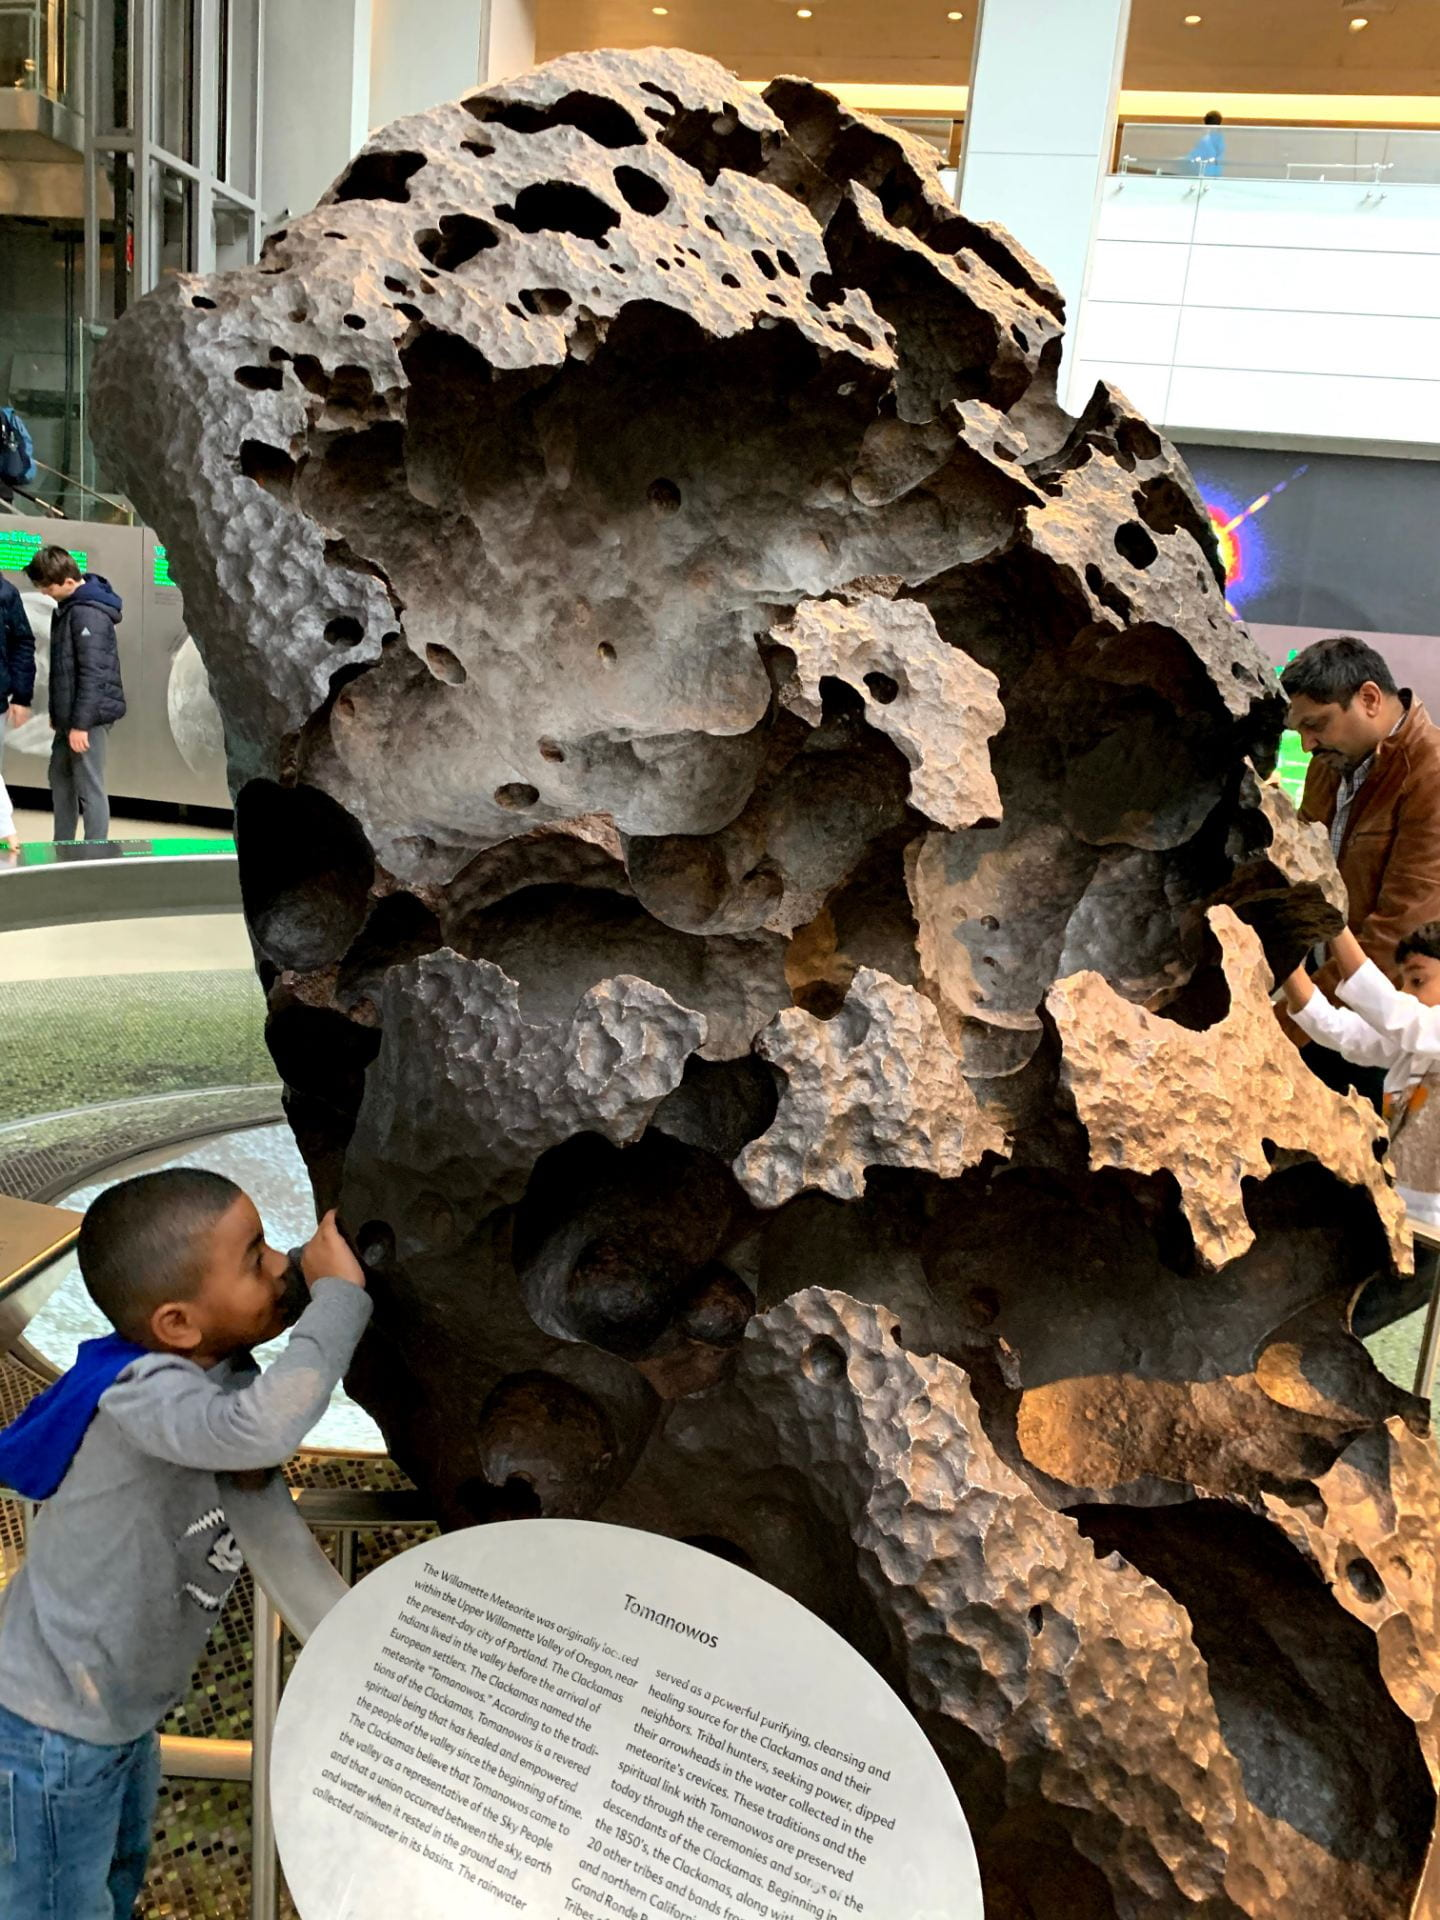 child looking at a large rock exhibit at the american museum of natural history